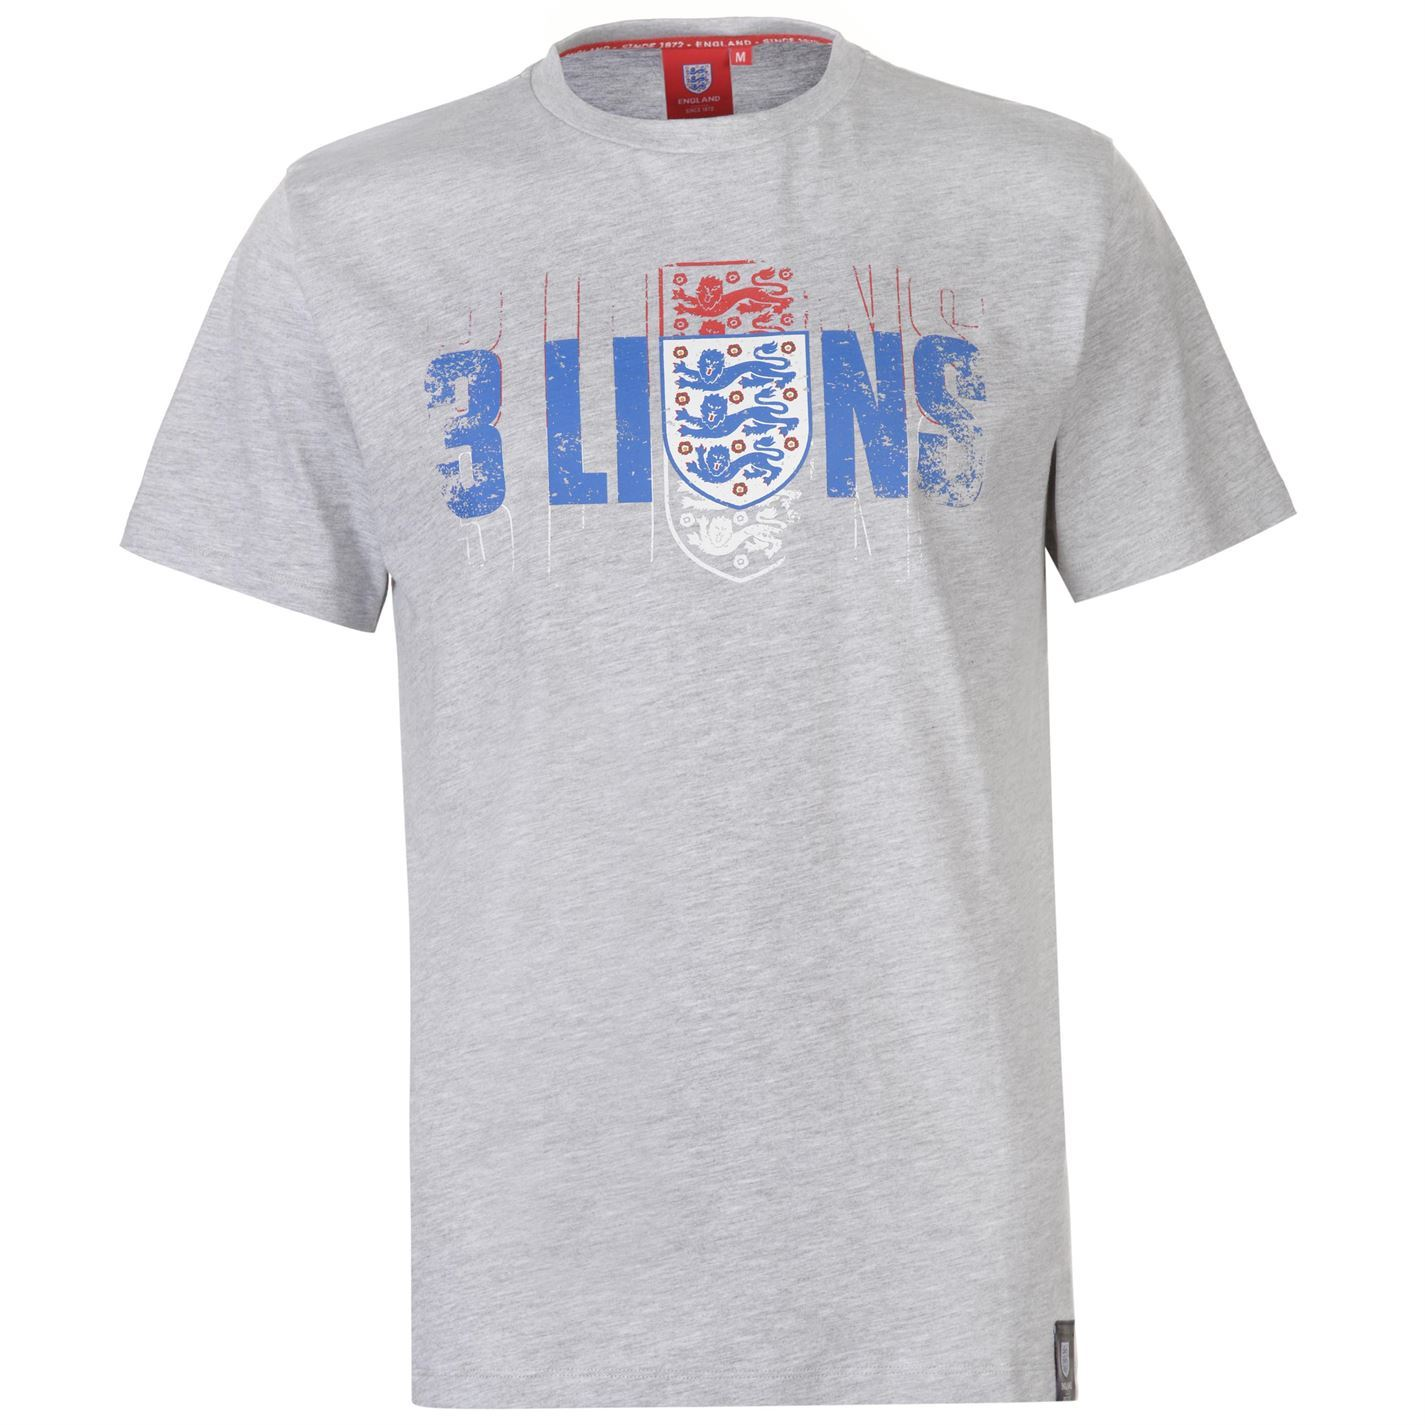 FA England 3 Lions T Shirt Mens Gents Crew Neck Tee Top Short Sleeve 360 Spin